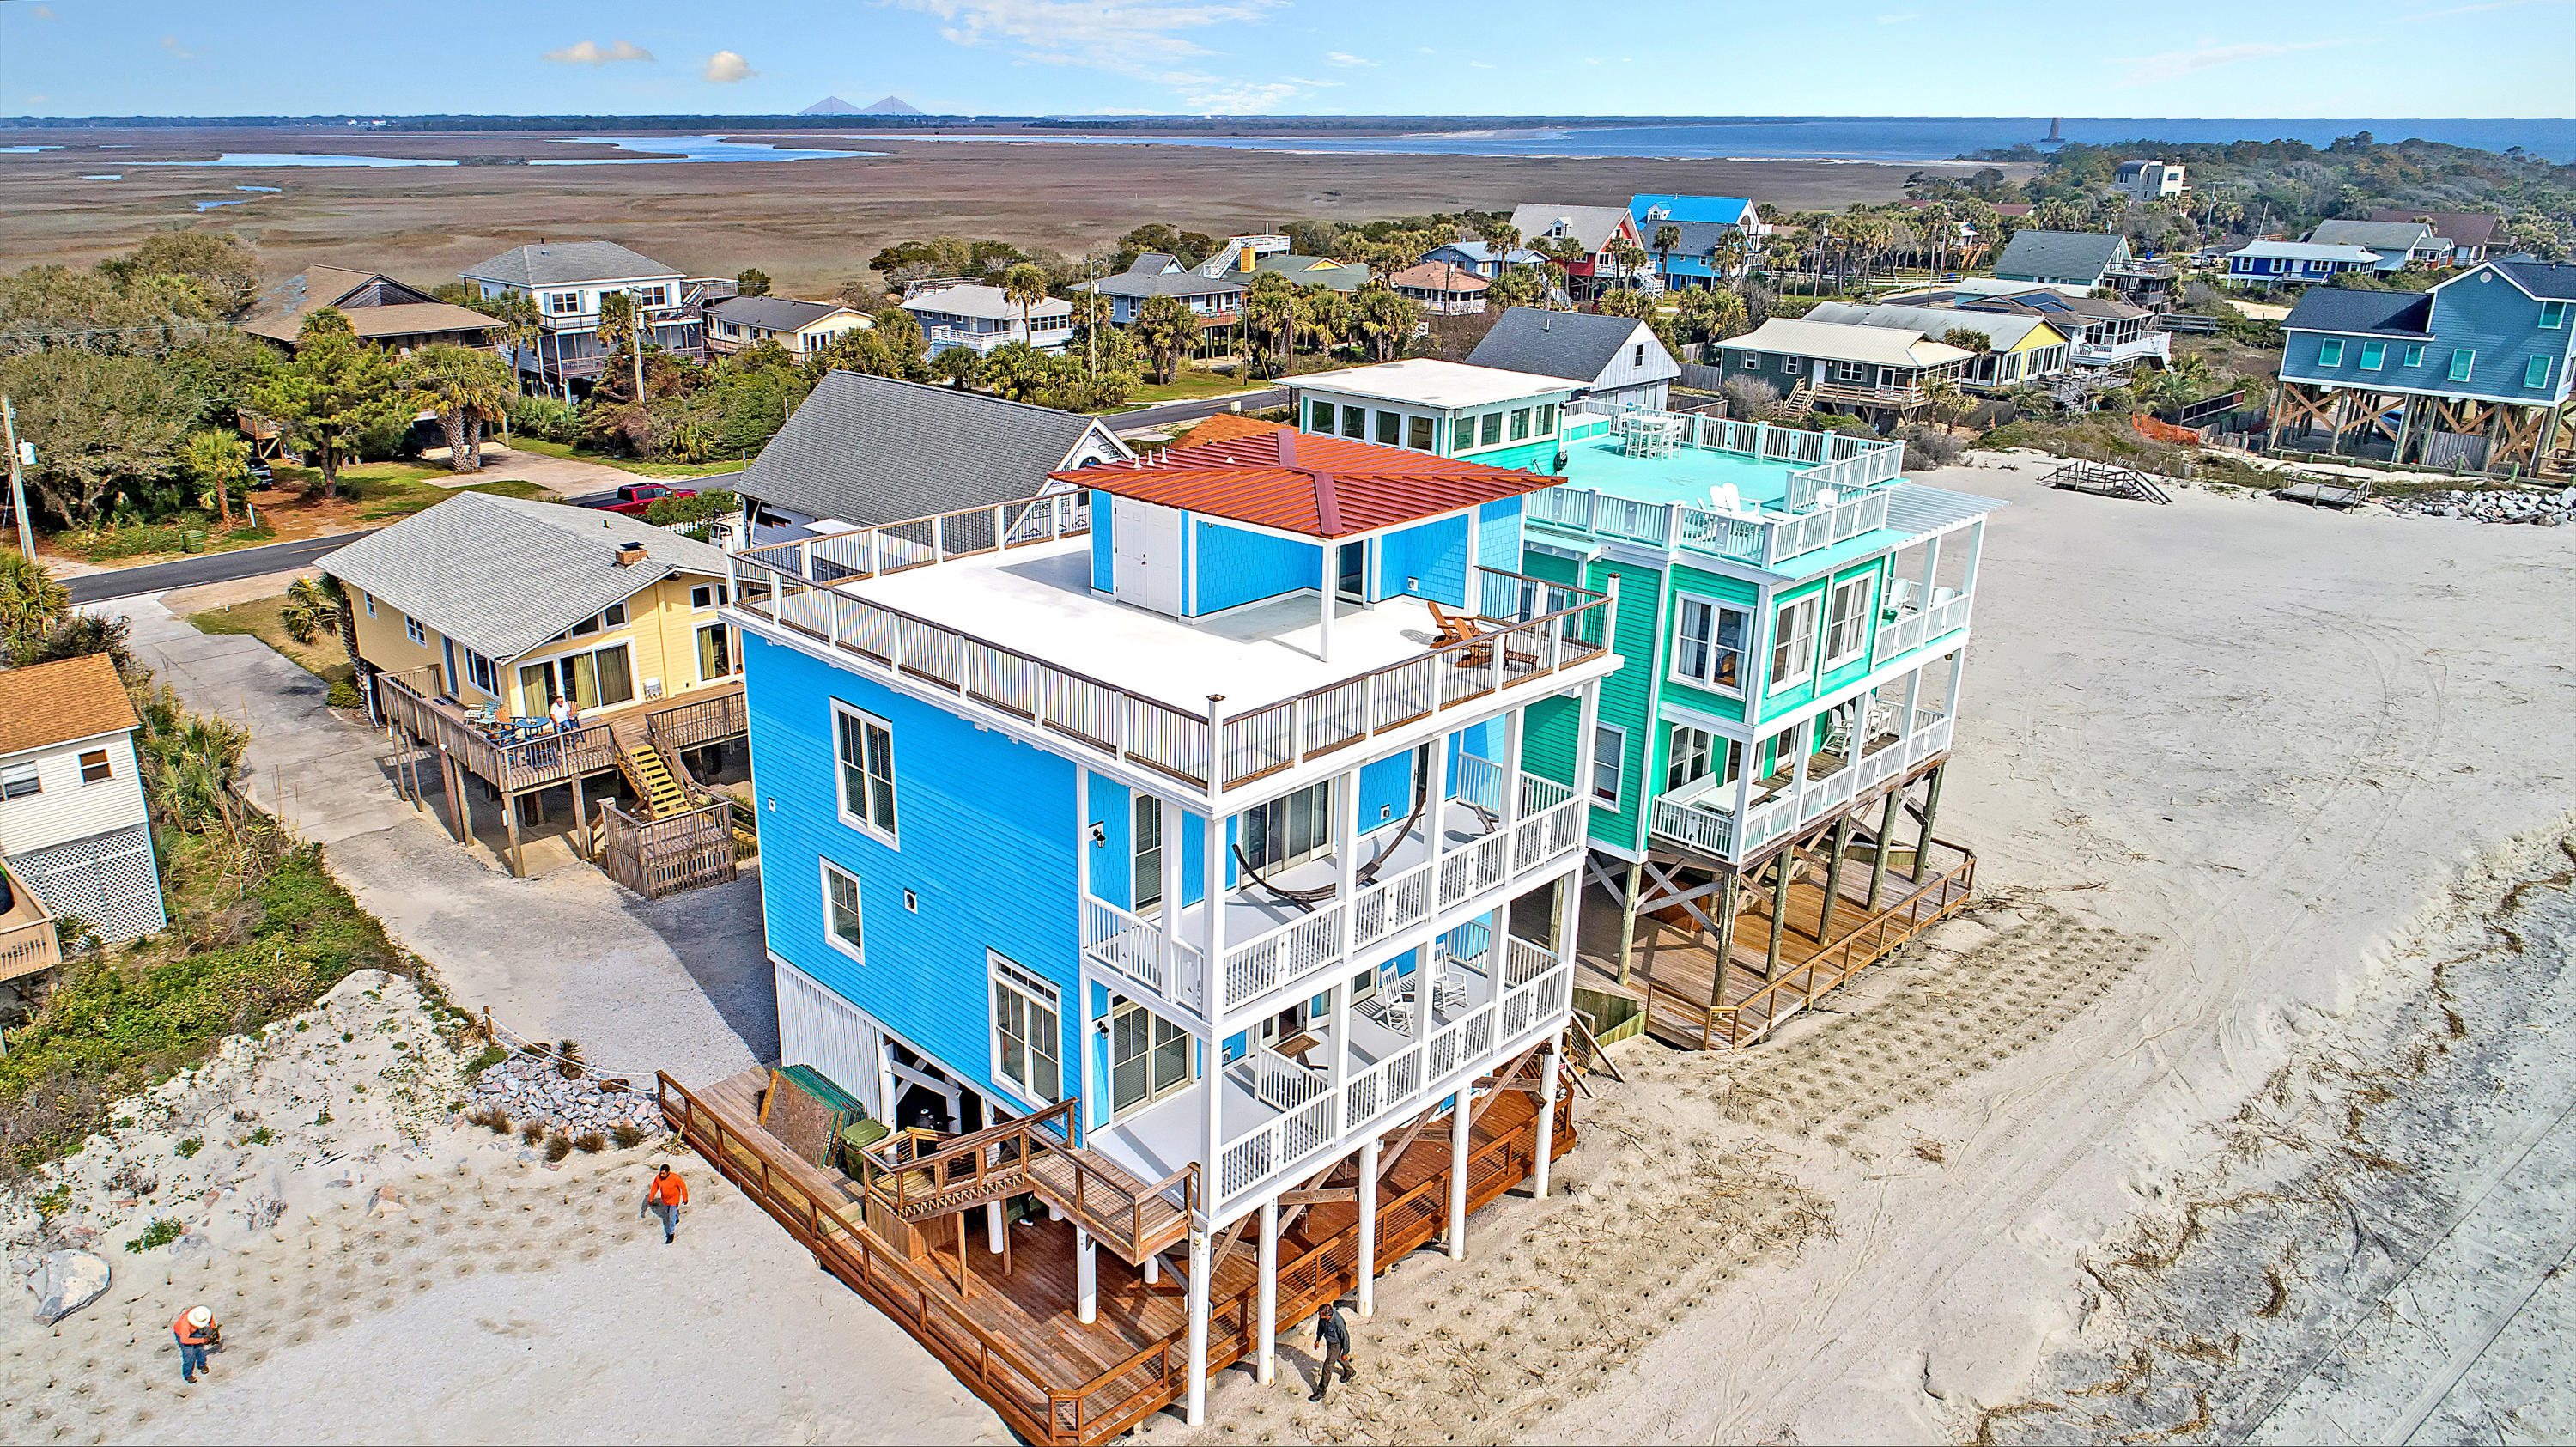 1707  B E Ashley Avenue  Folly Beach, SC 29439